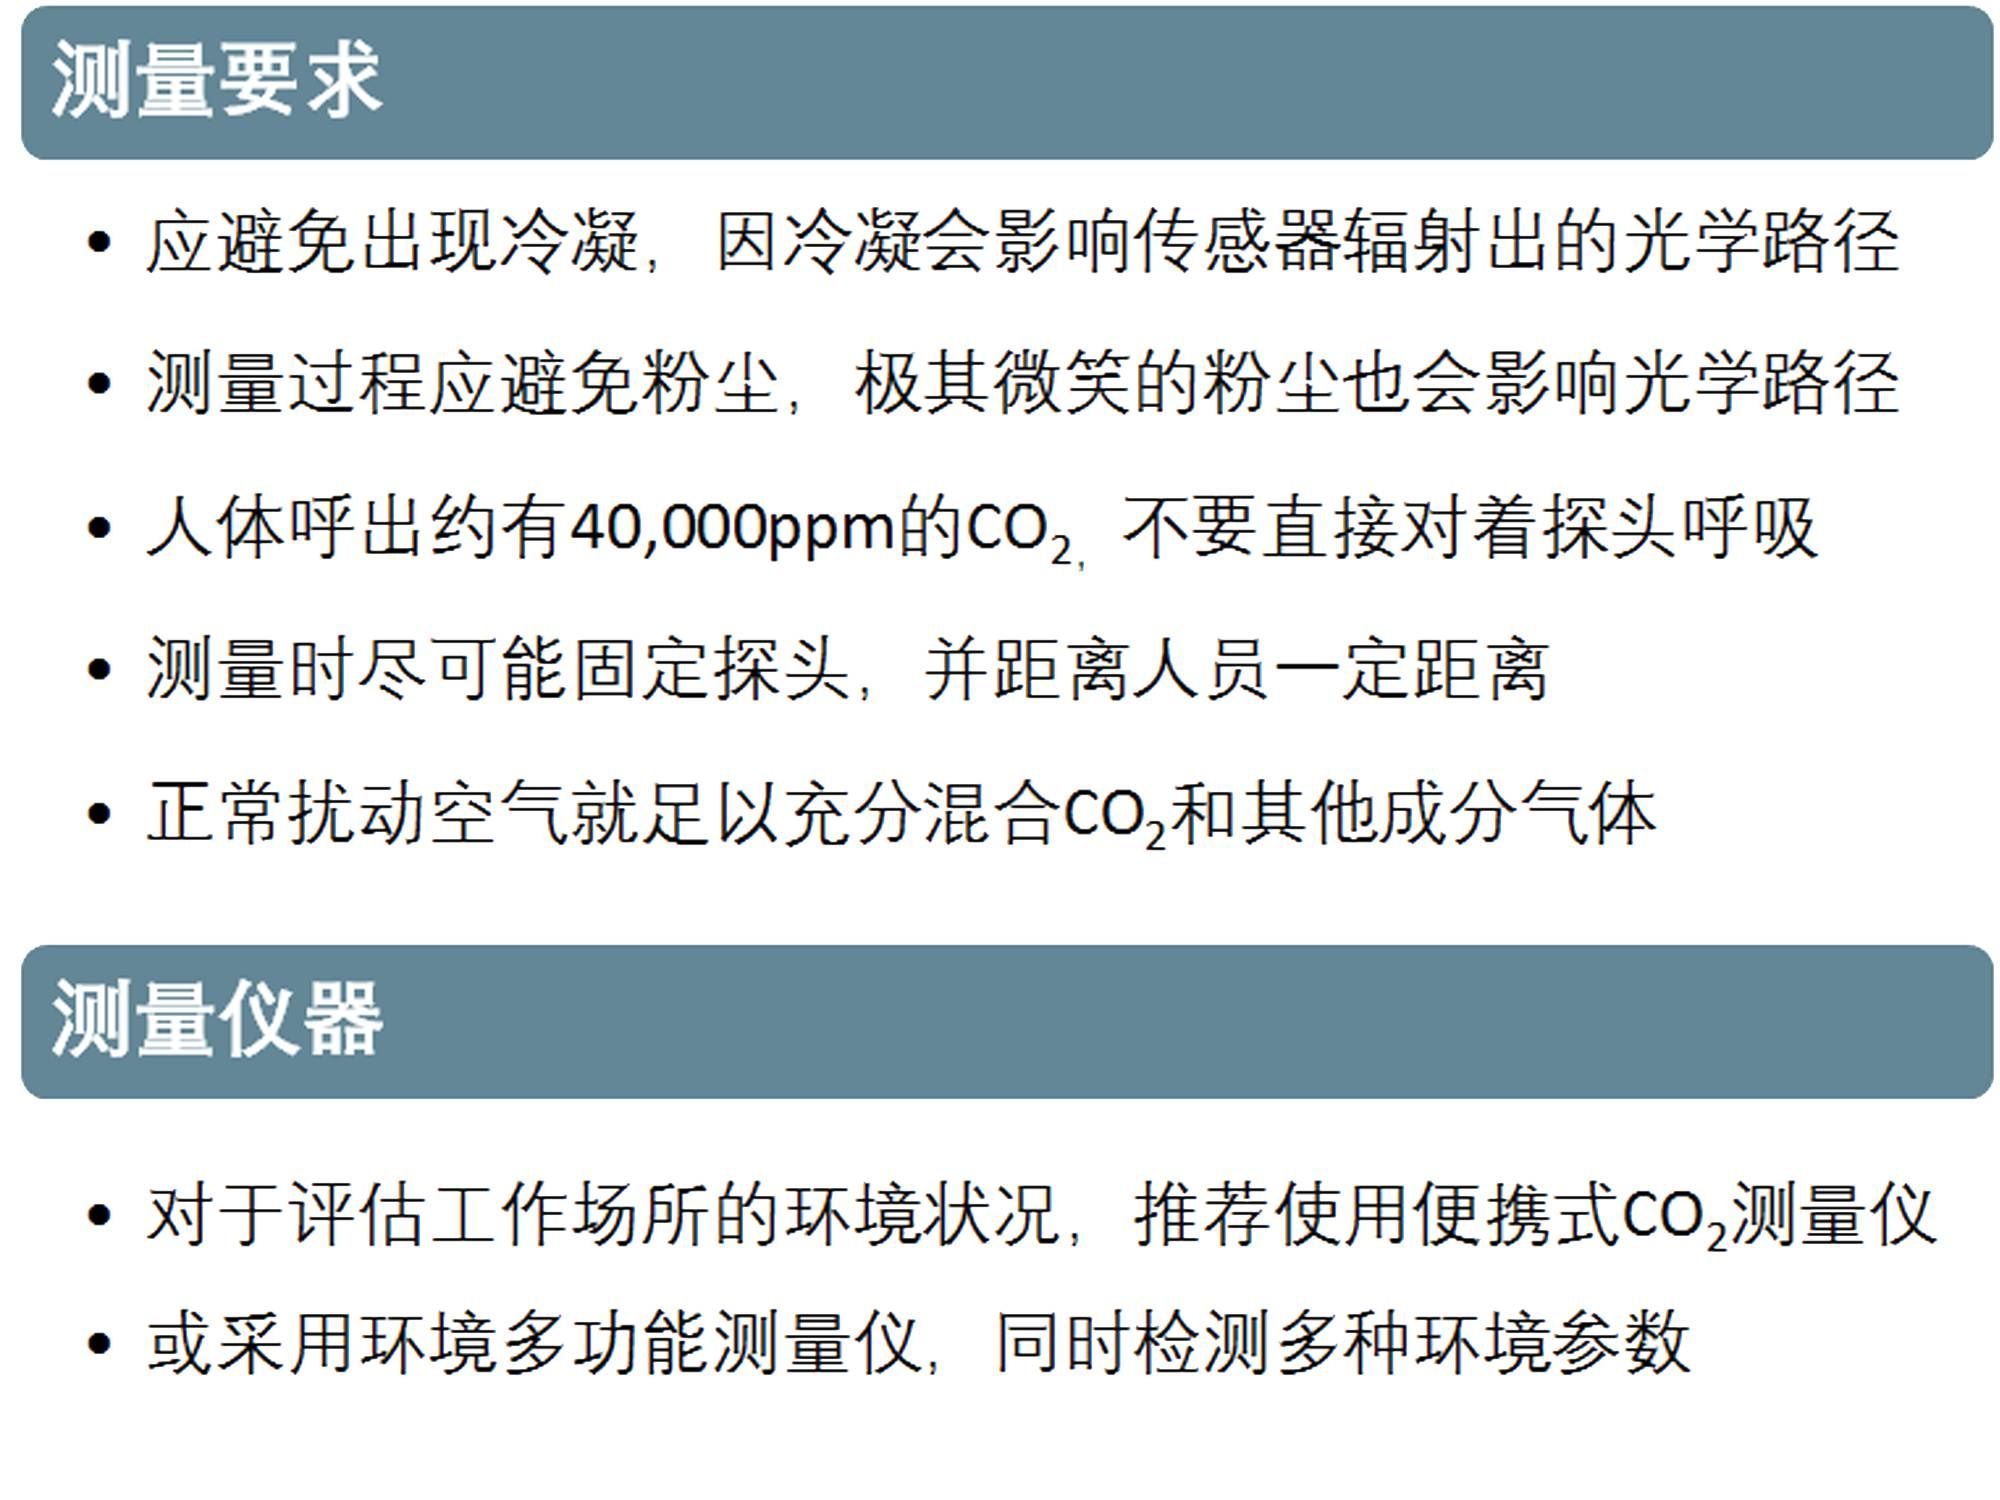 cn-20170928-applications-hvacr-indoor-air-quality03.png